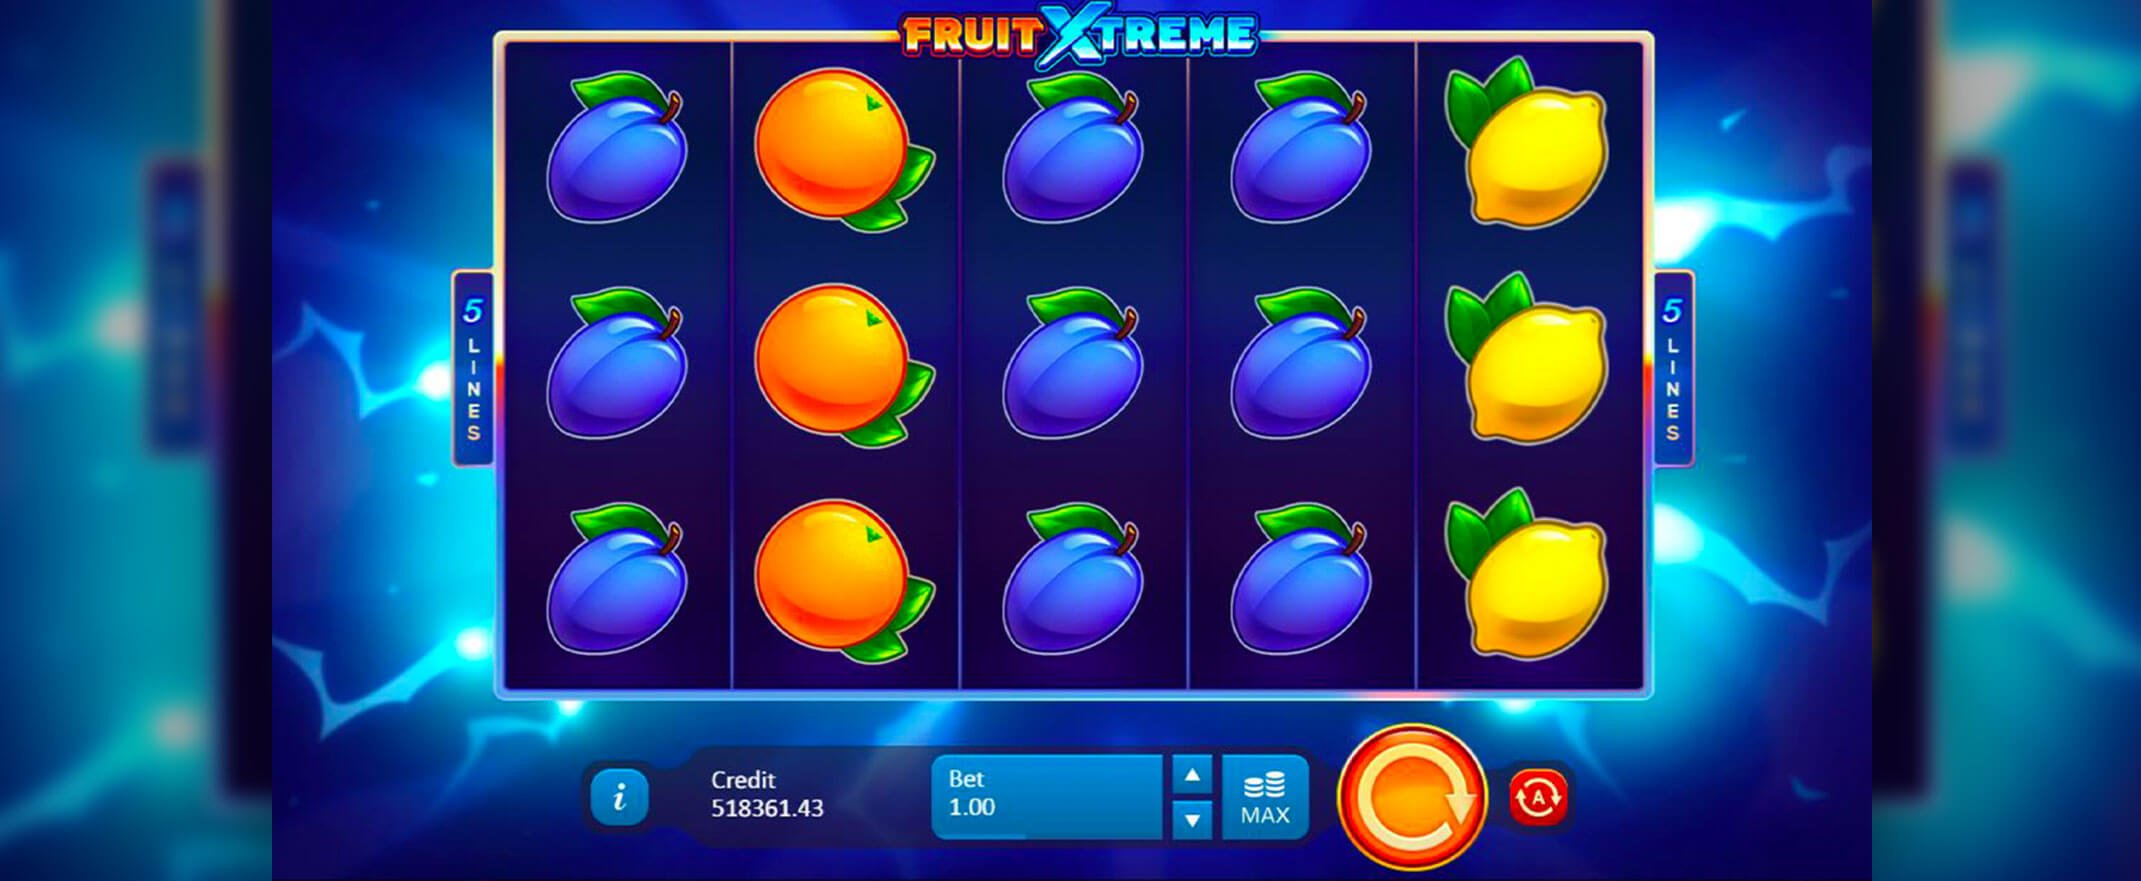 Xtreme Slots Review: Ins and Outs